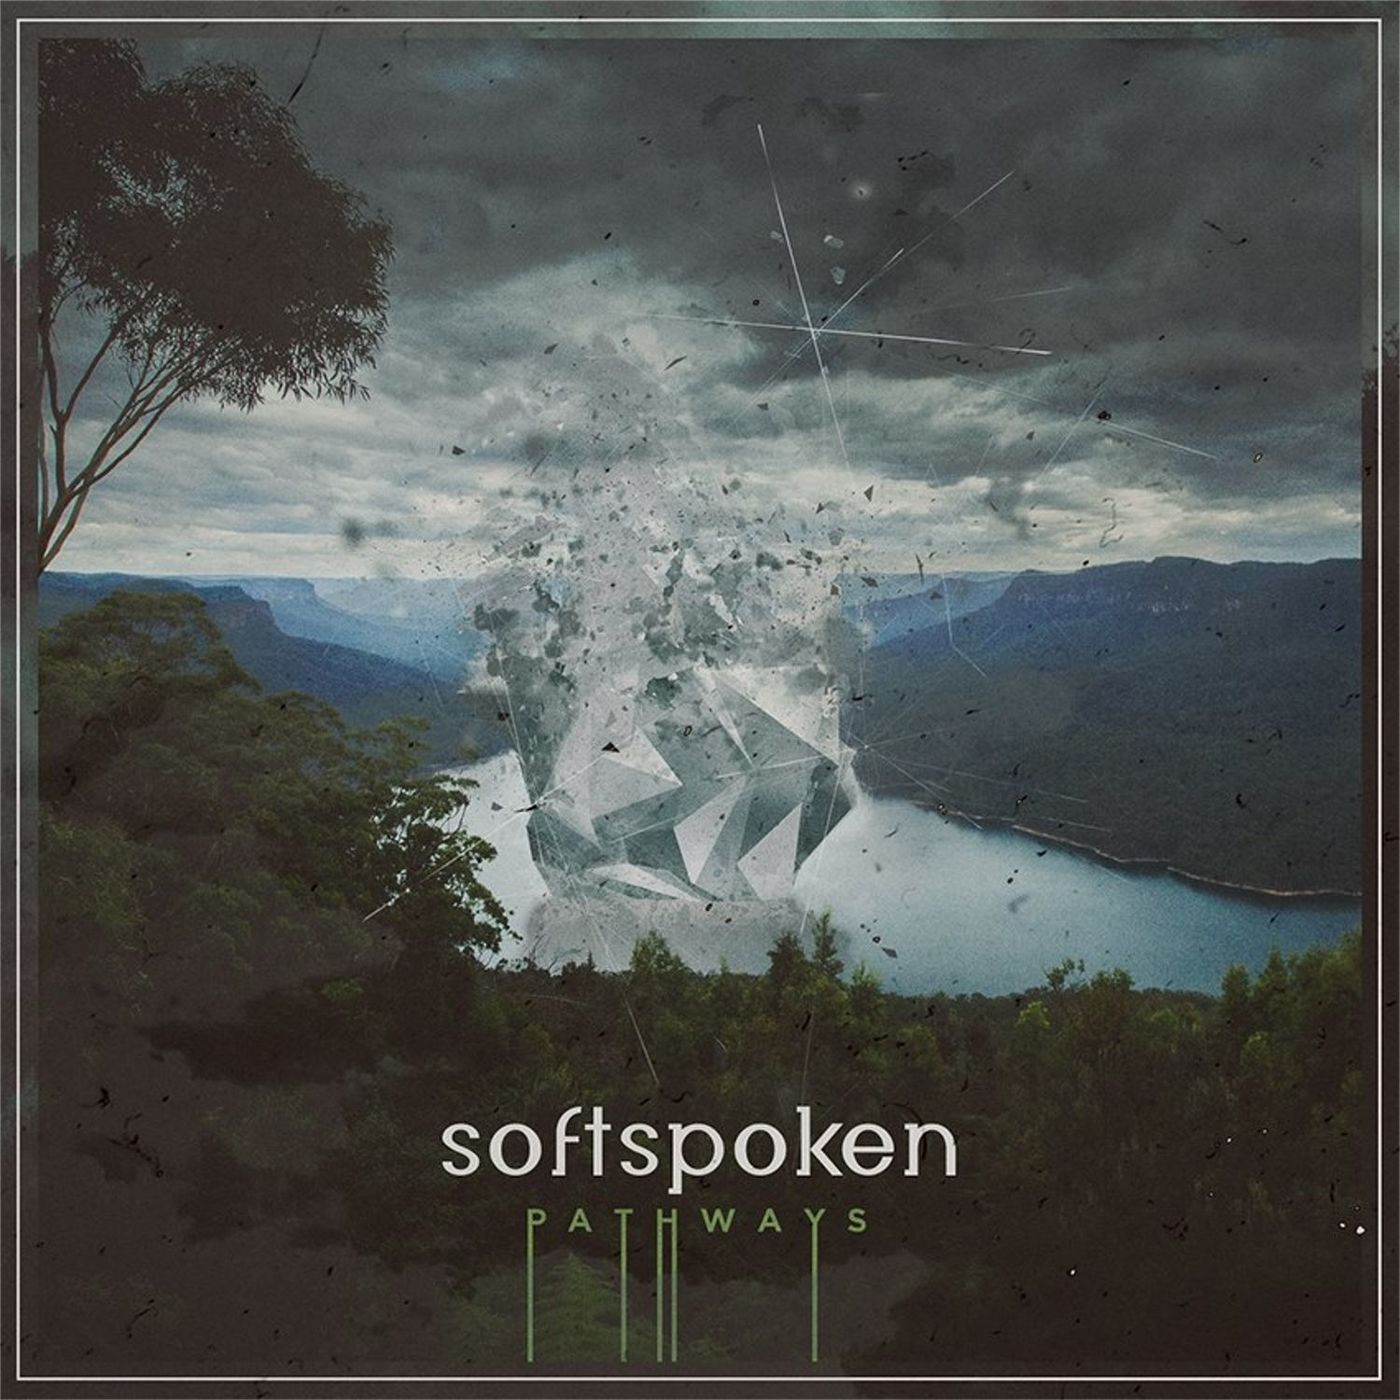 Softspoken - I Feel Fire [single] (2017)